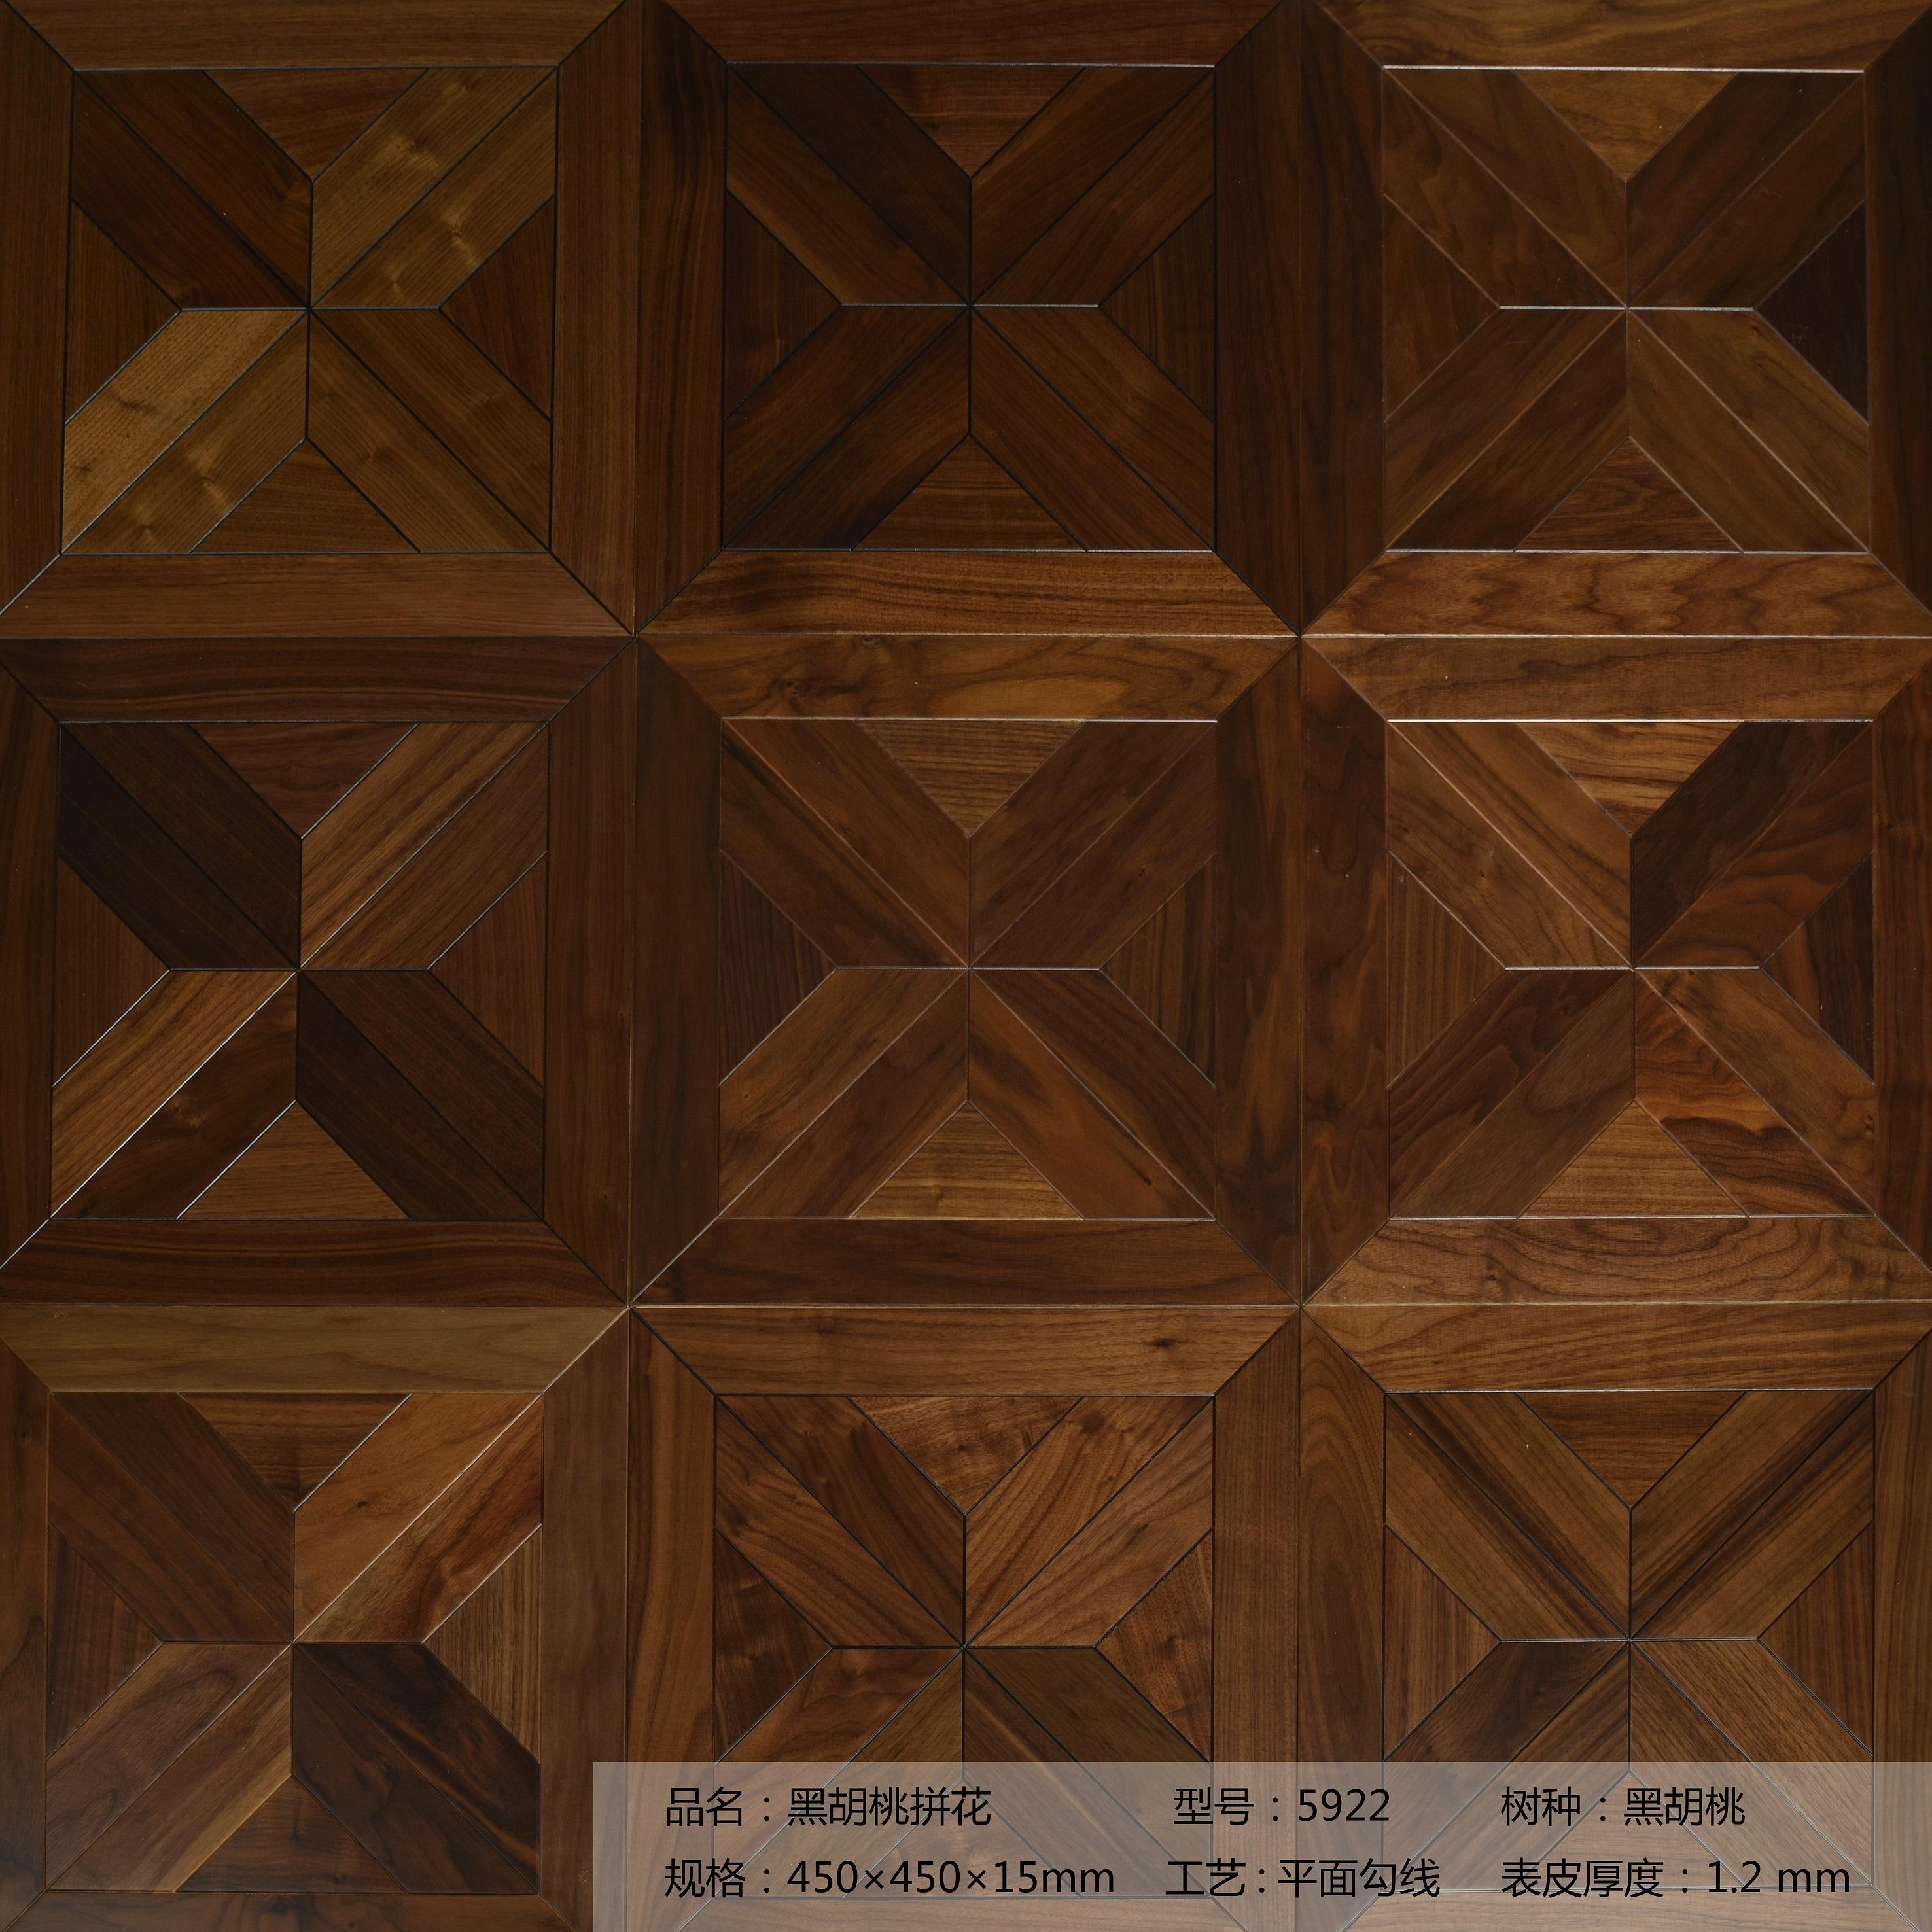 Black American Walnut Palais Parquet tile engineered wood flooring medallion inlay home deco wallpaper marquetry backdrops carpet panels